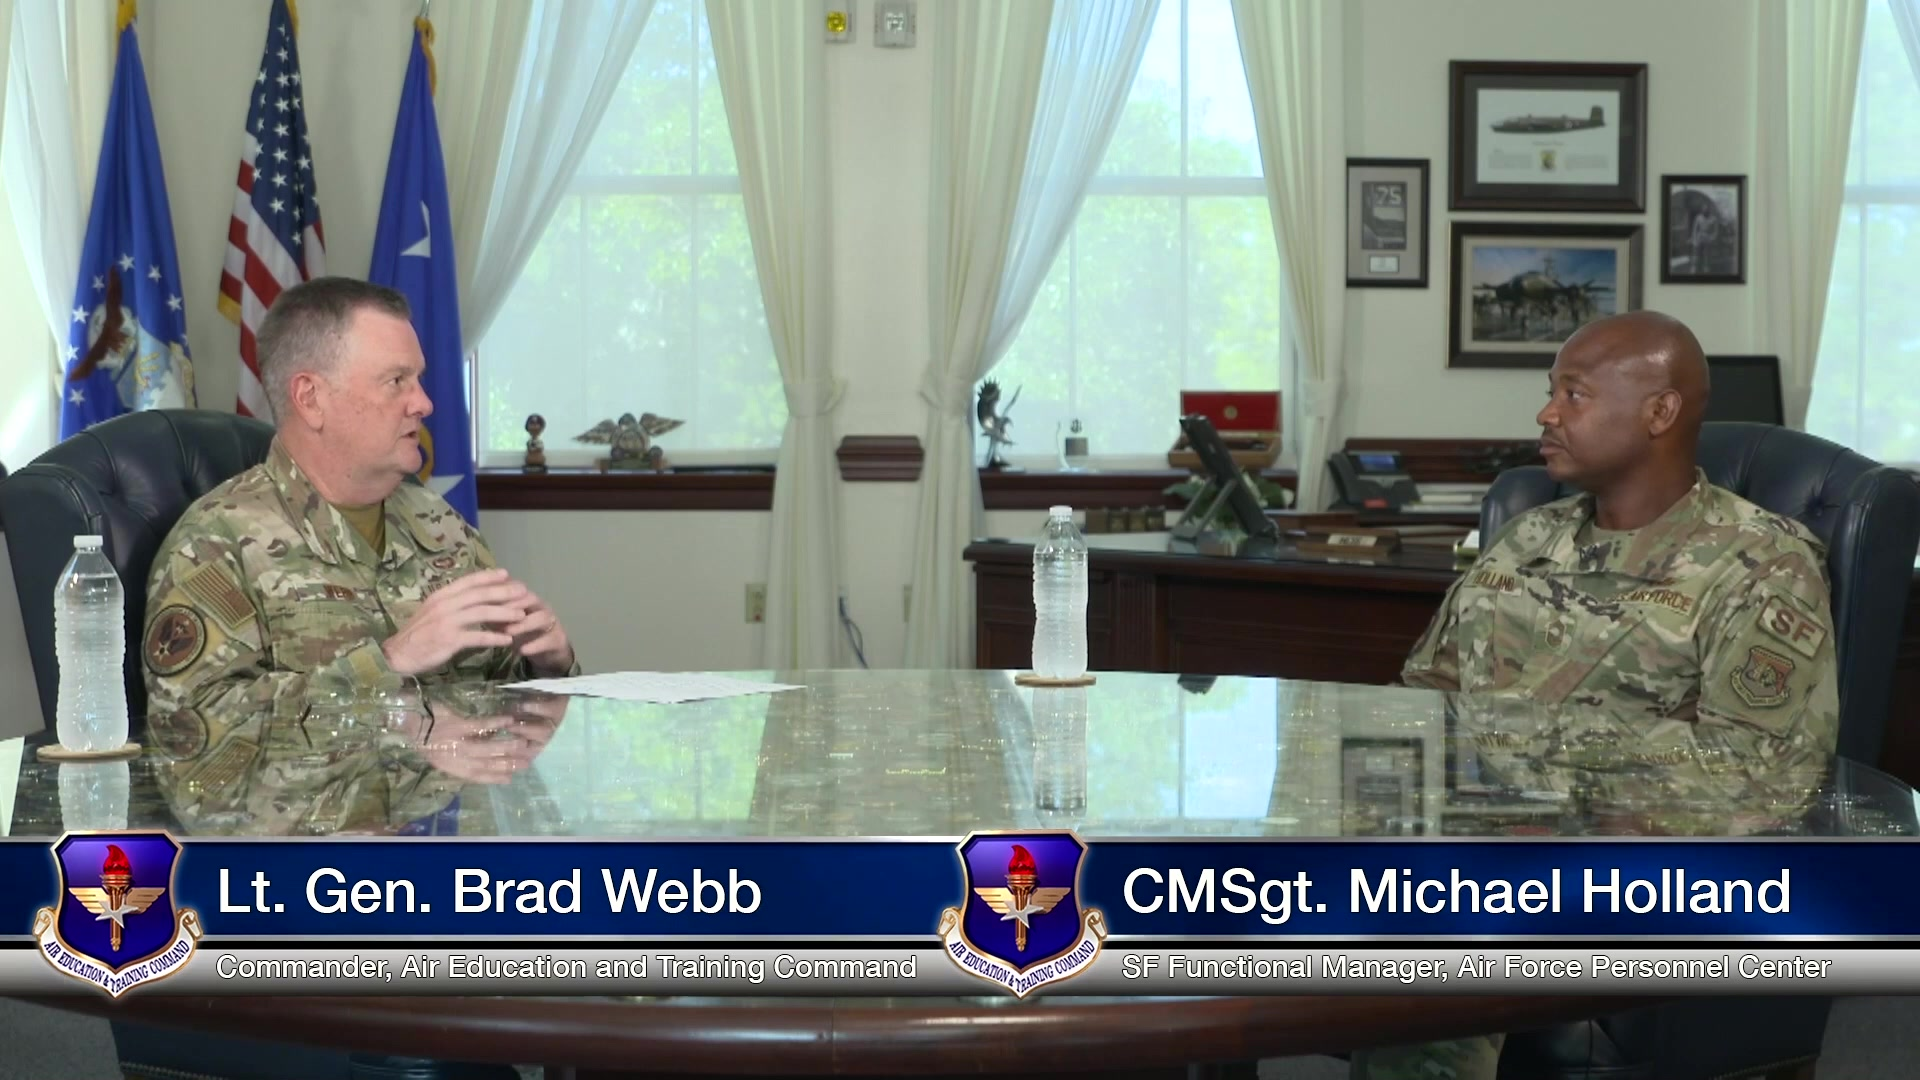 Lt. Gen. Brad Webb, commander of Air Education and Training Command, and CMSgt Michael Holland, Security Forces functional manager at Air Force Personnel Center, engage in conversations on race and diversity in the Air Force. CMSgt Holland also discusses his unique experiences as an enlisted Airman.